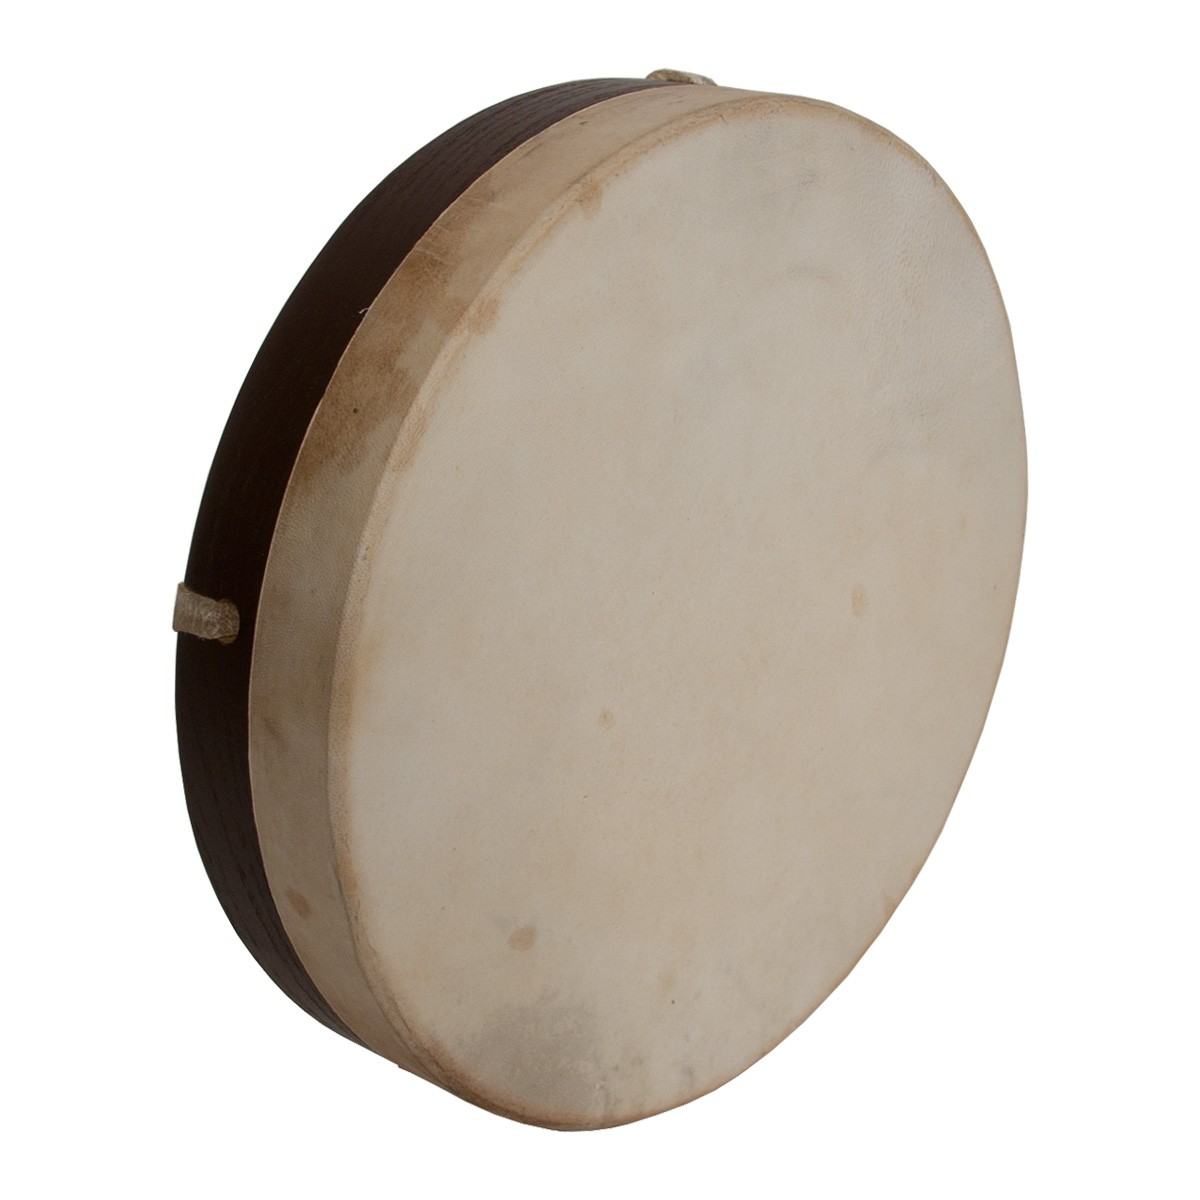 DOBANI Pretuned Goatskin Head Wood Frame Drum w/ Beater 10'x2'